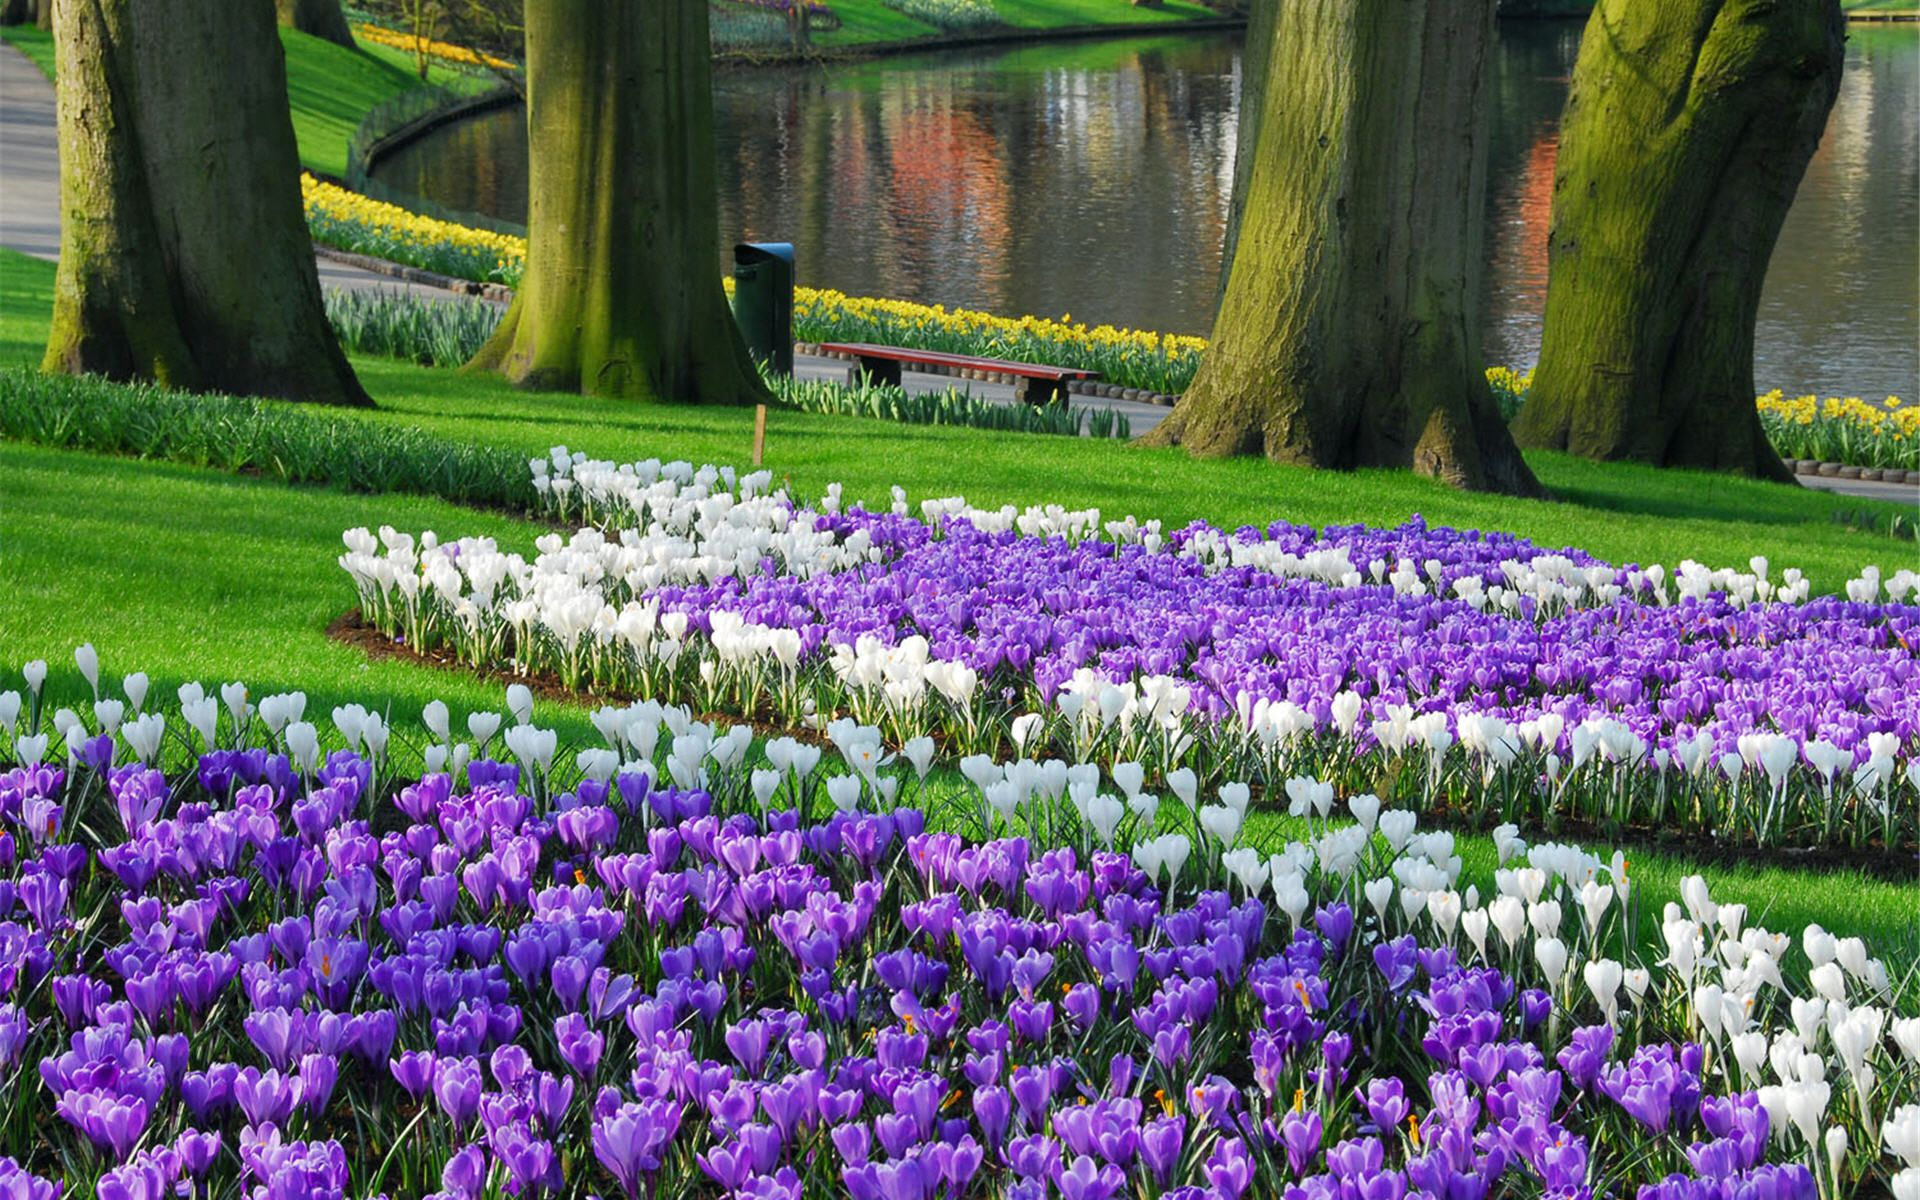 Keukenhof Largest Garden Wallpaper HD Garden vines